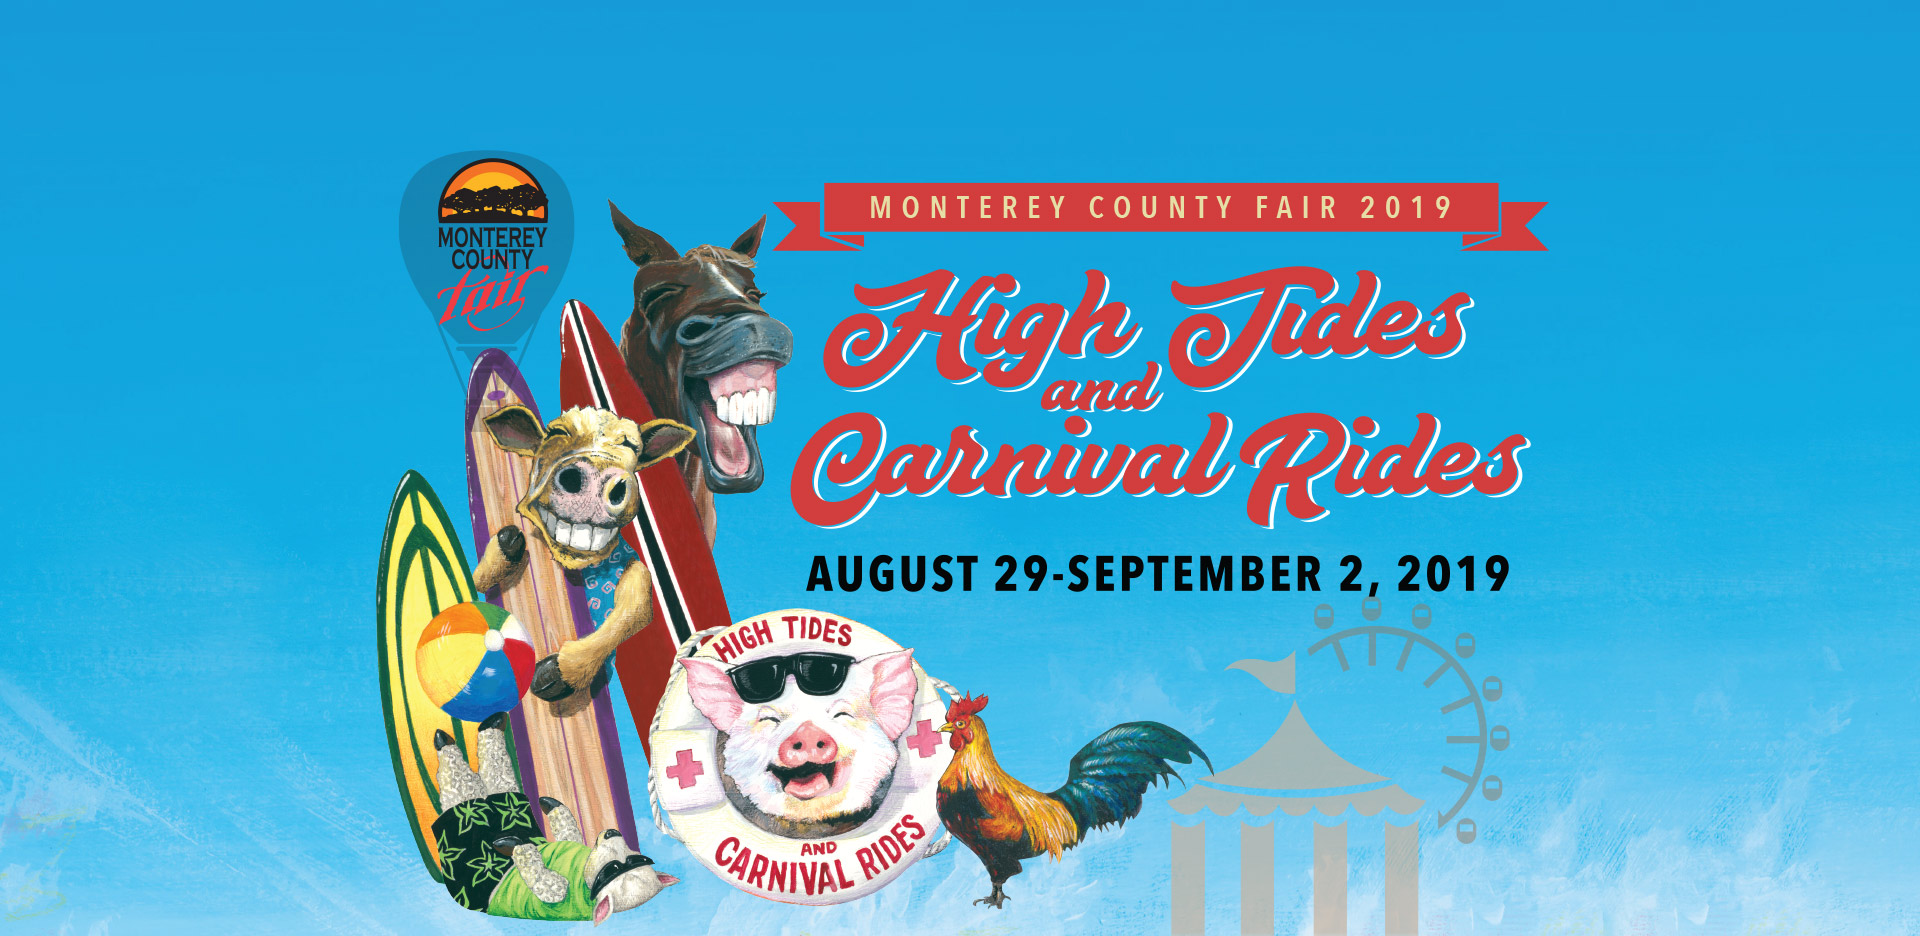 2019 Monterey County Fair